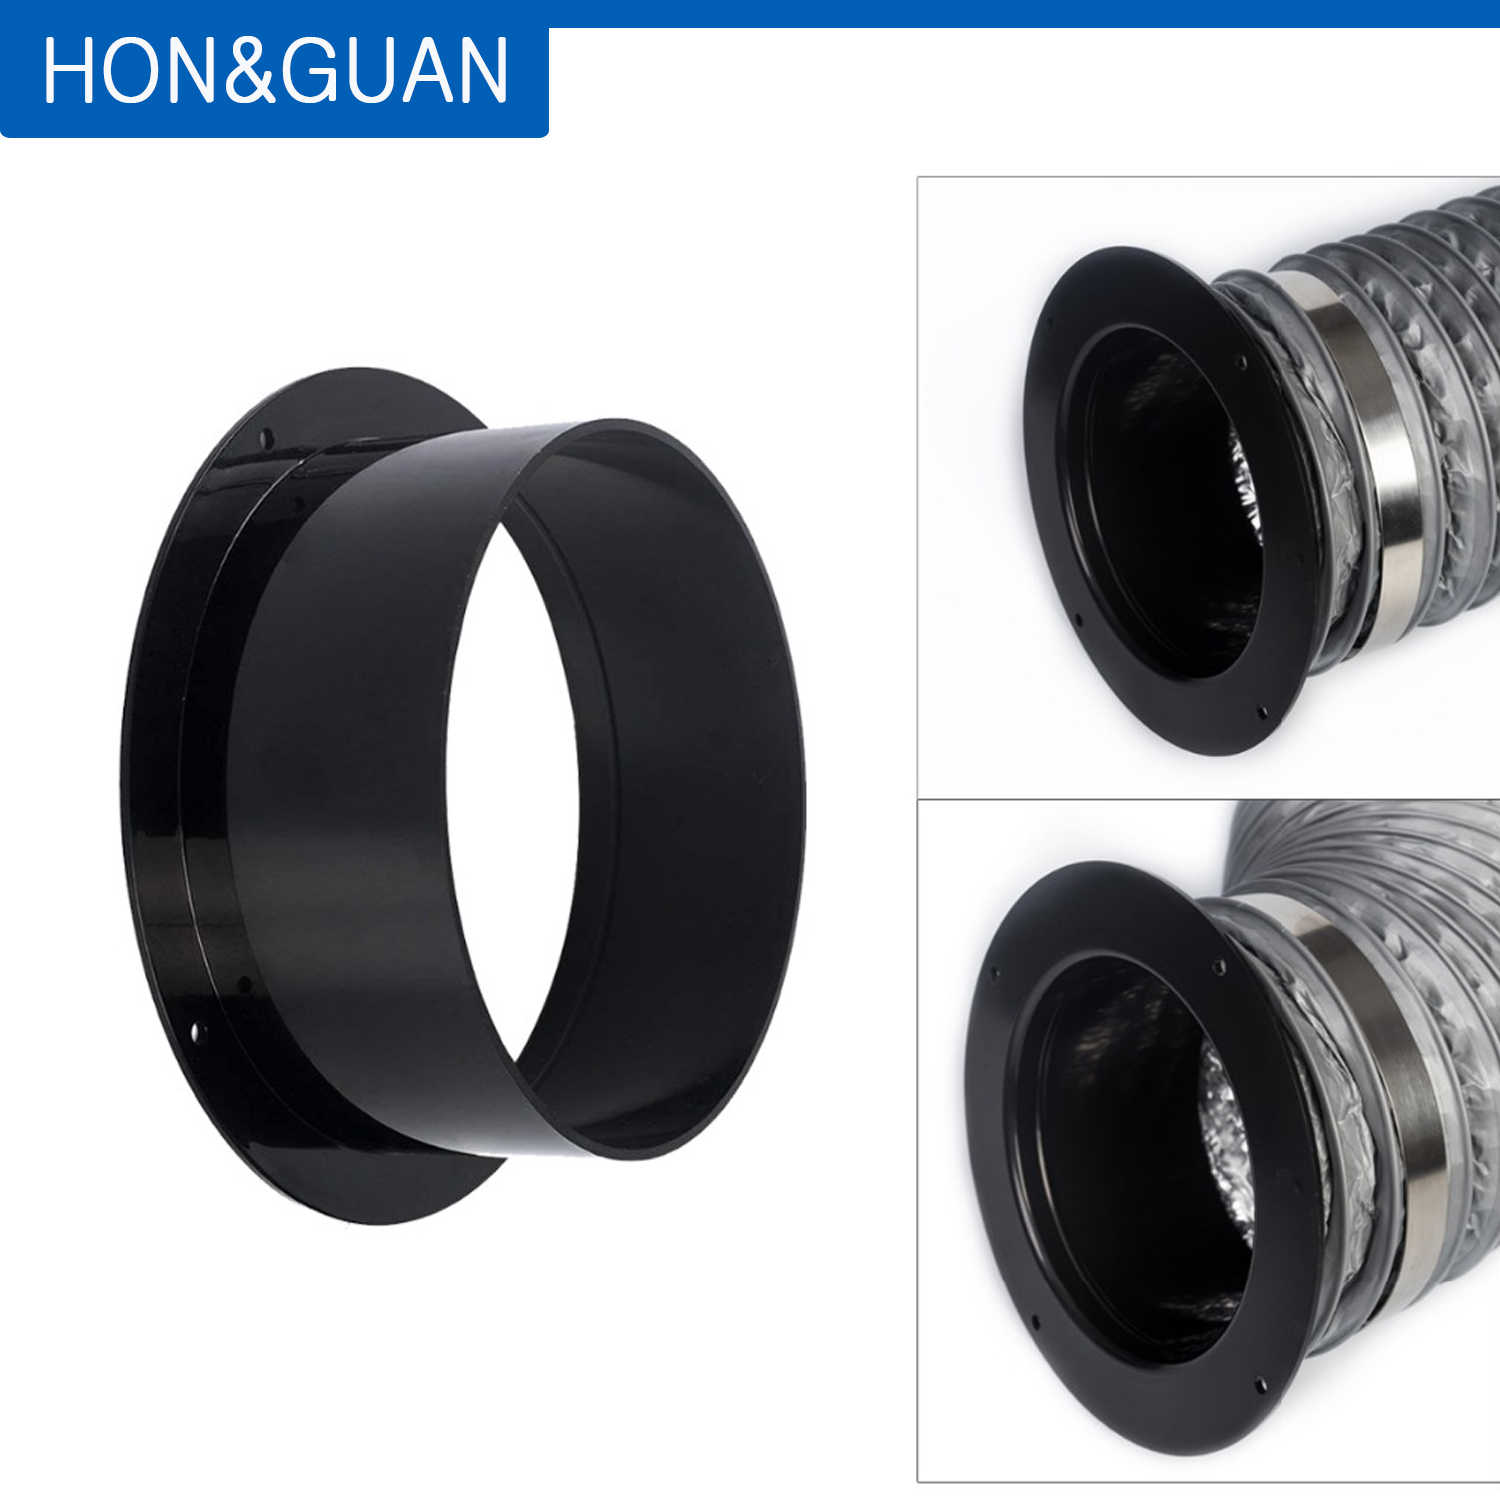 Pipe Connector Exhaust Pipe Connector Connection Piece Plastic Ventilation